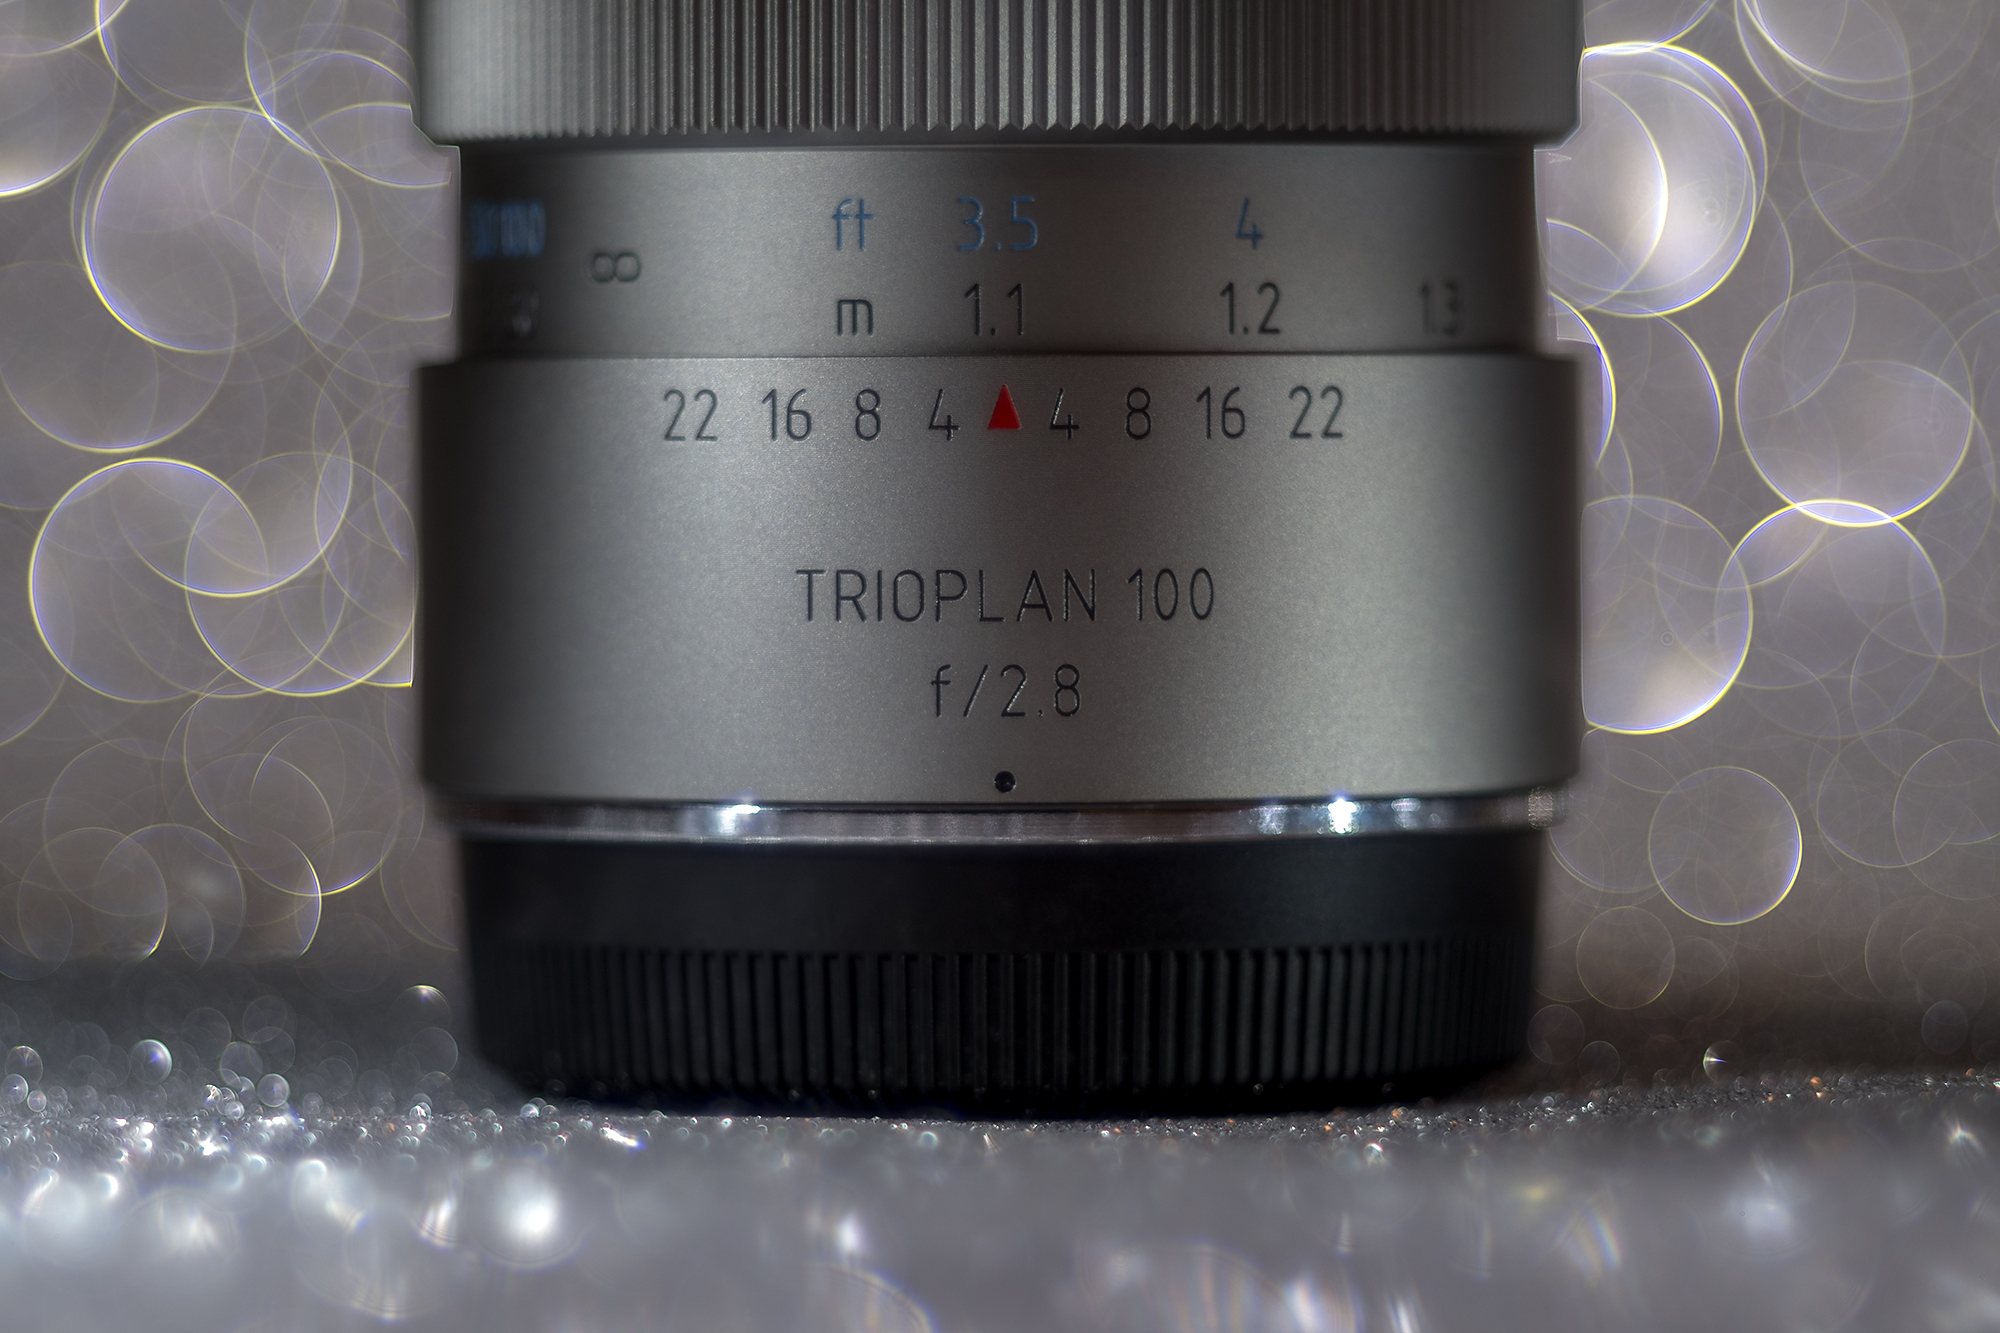 The Legend And the Bubble Bokeh  Review of the Meyer Optik